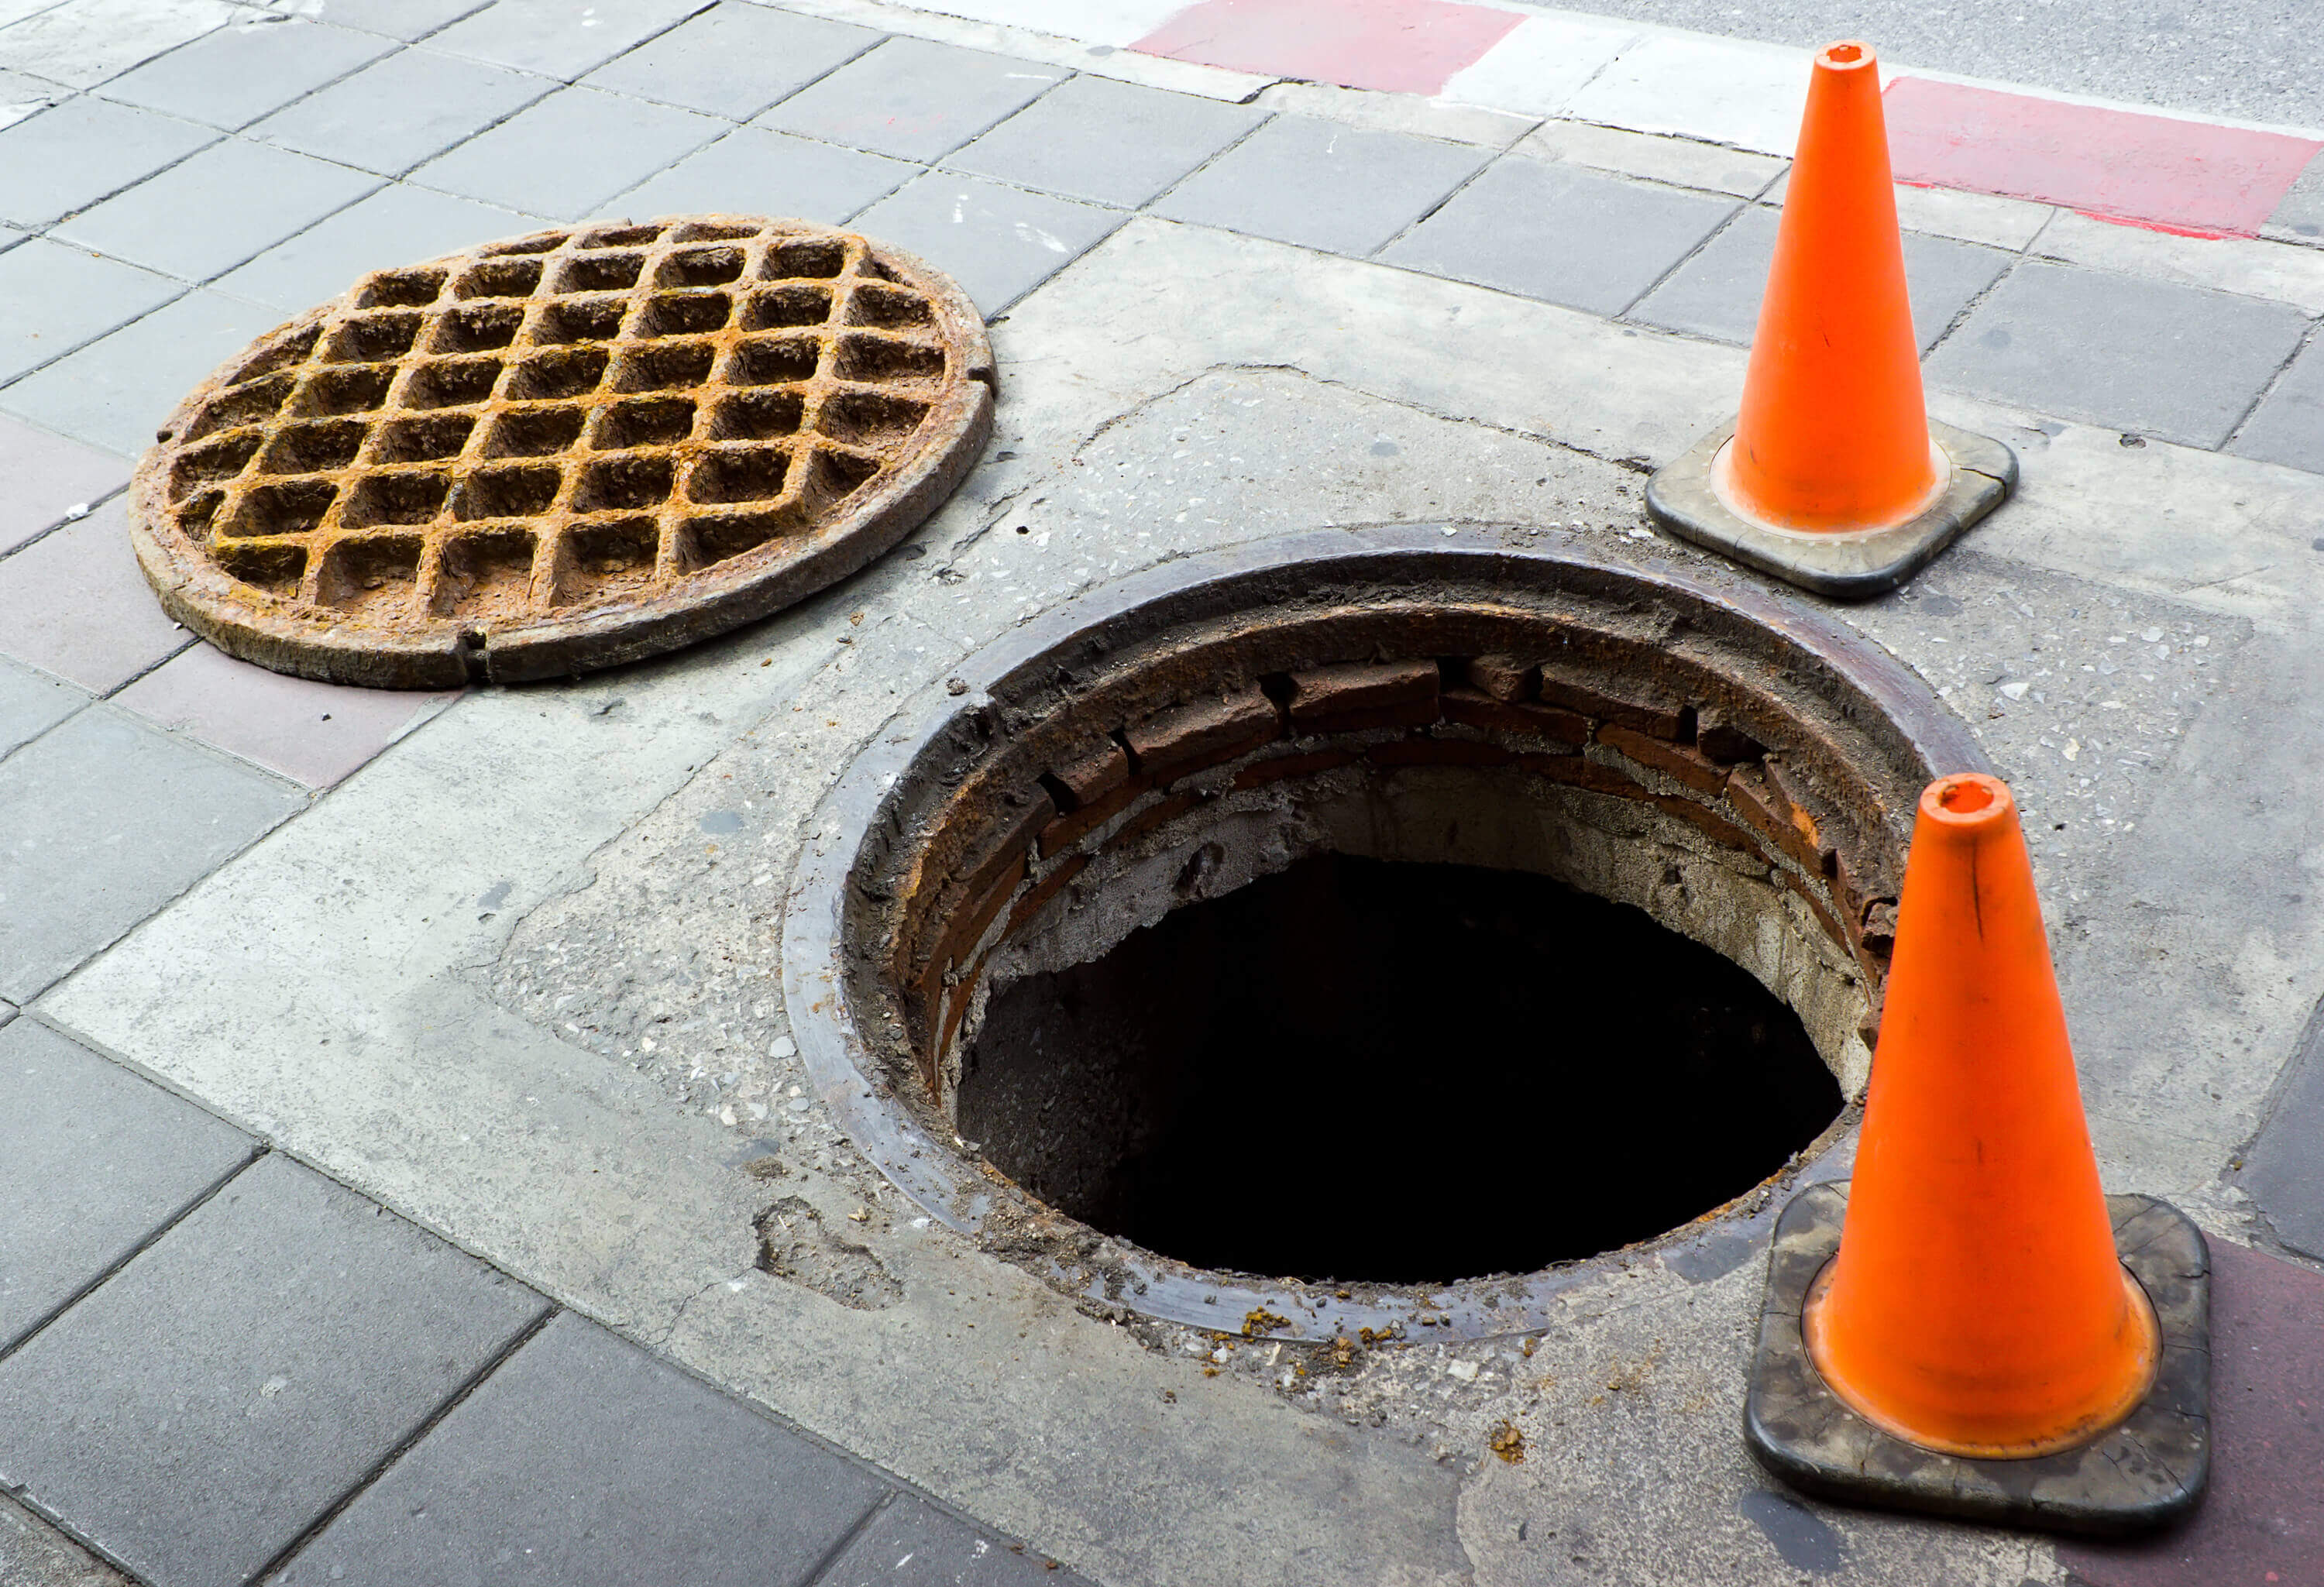 Open manhole and cones